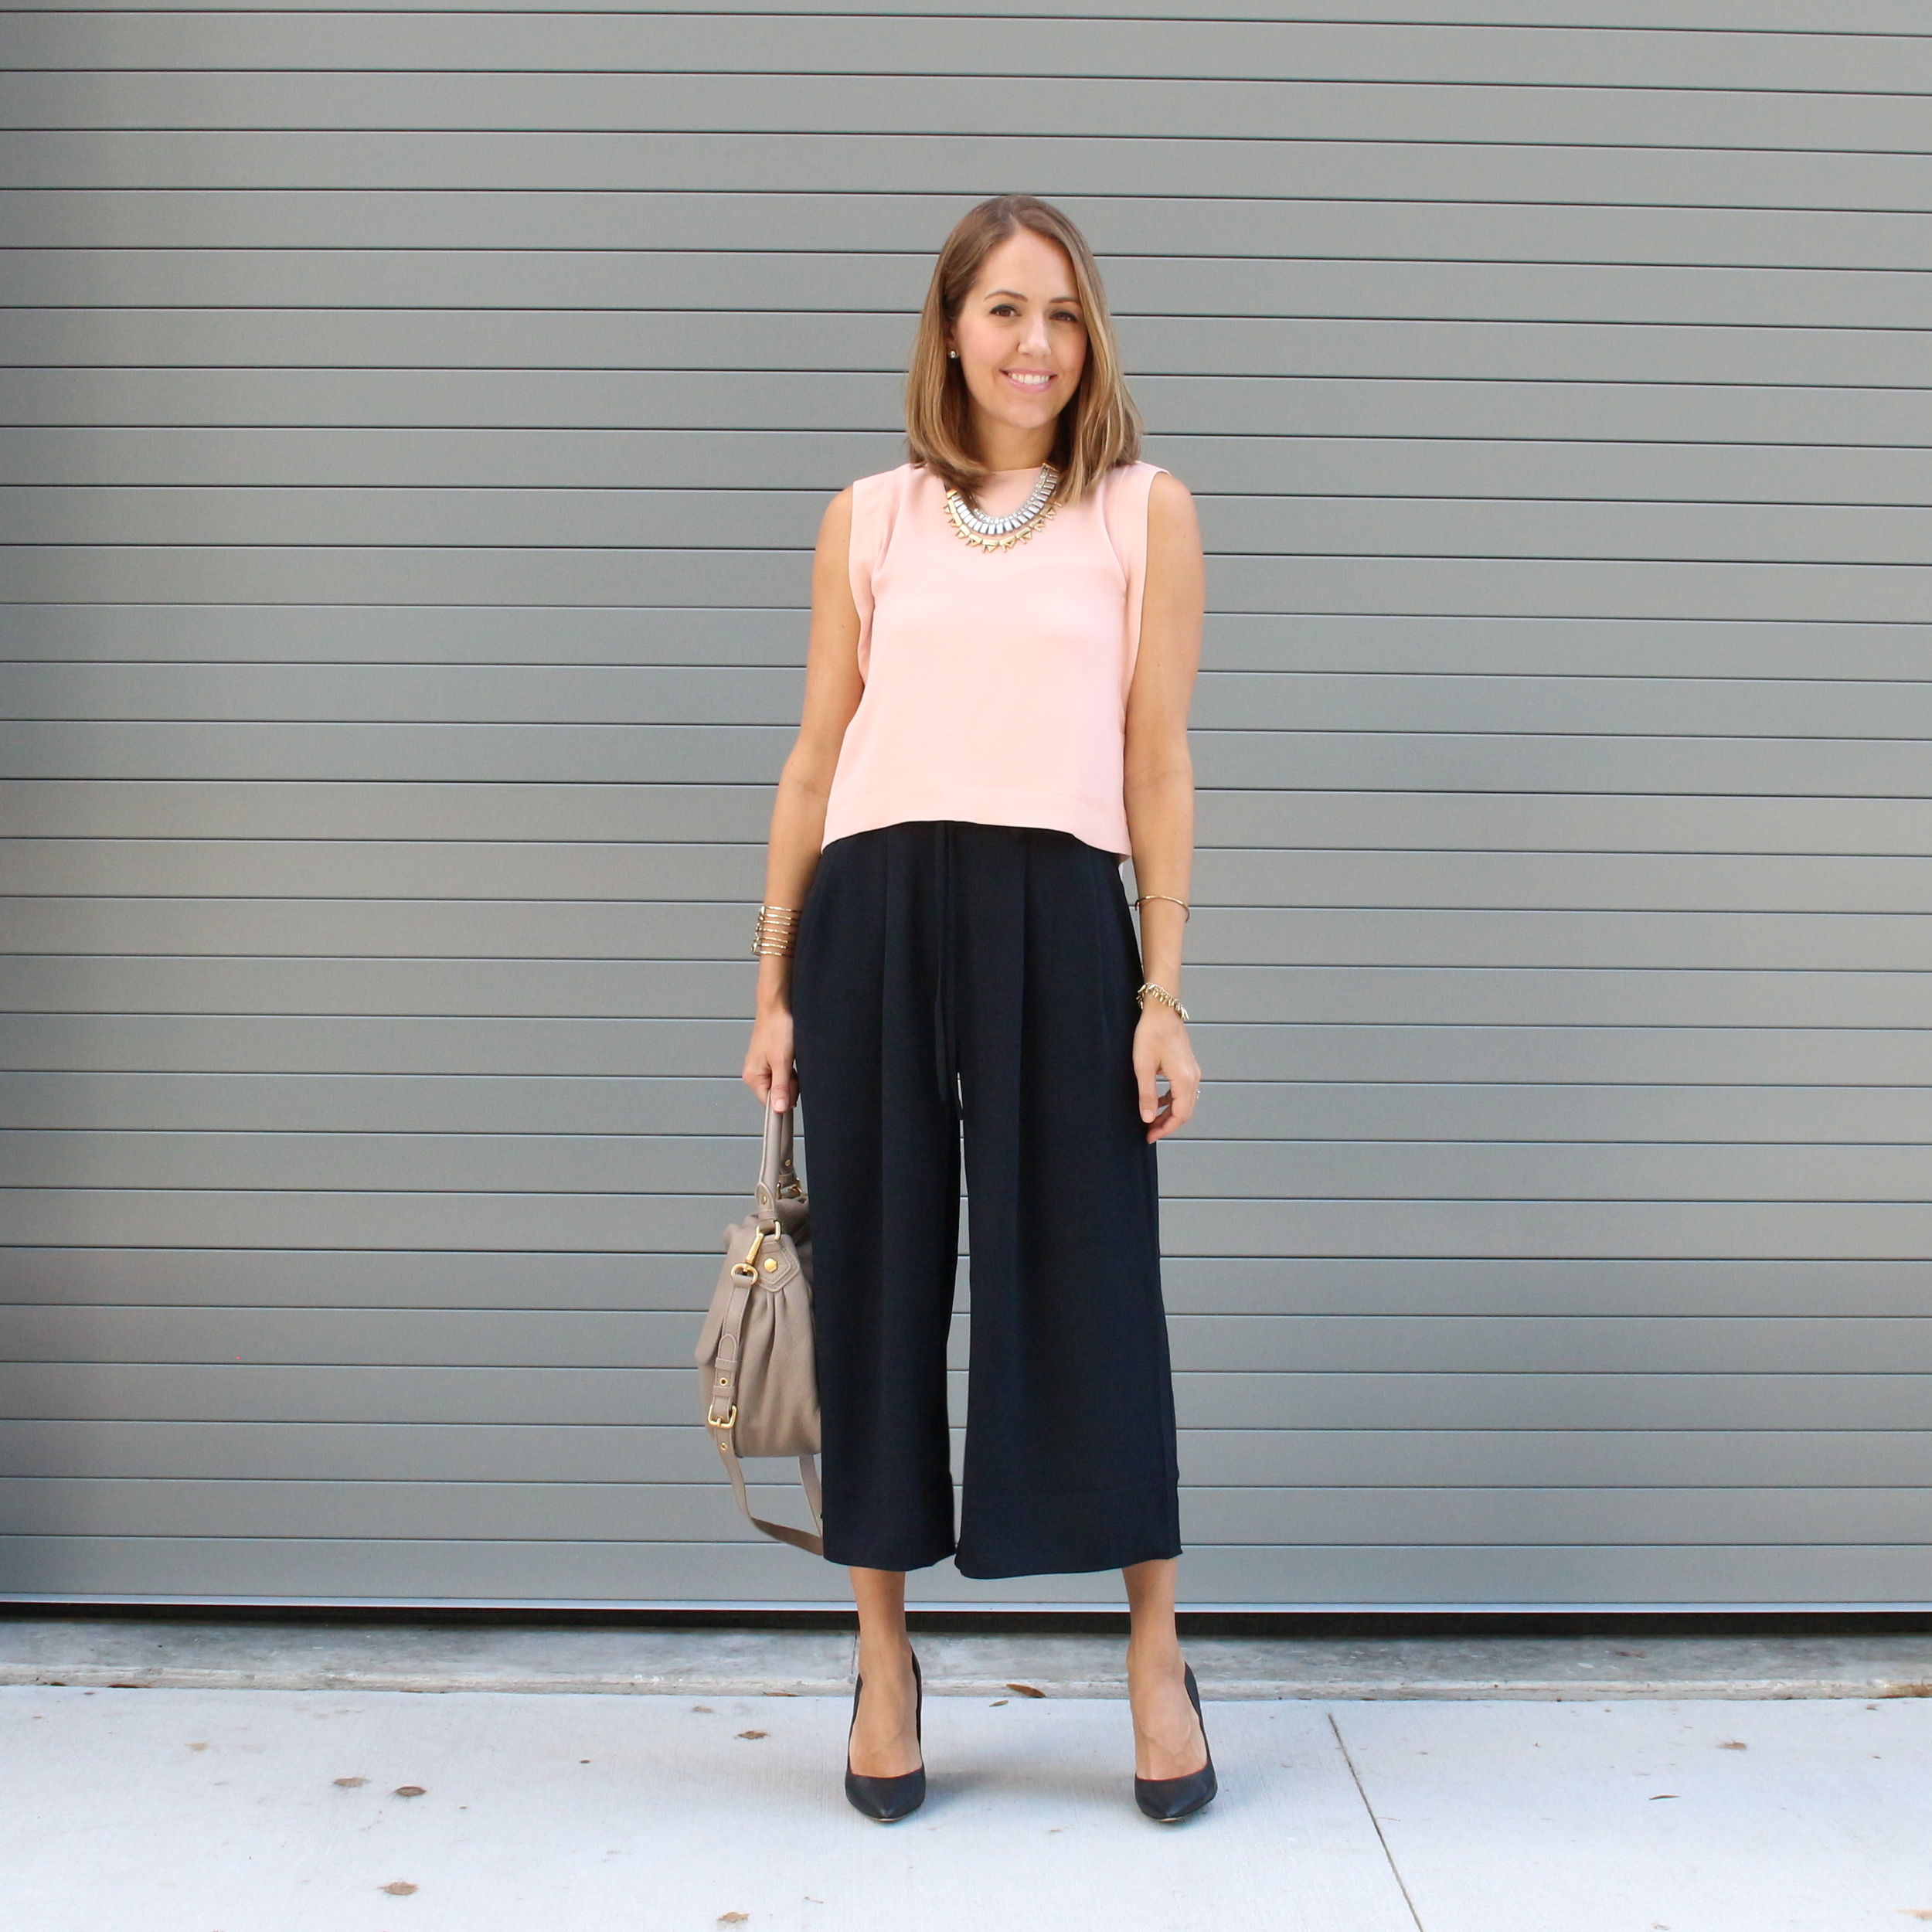 Belle + Sky pale pink top and black coulottes